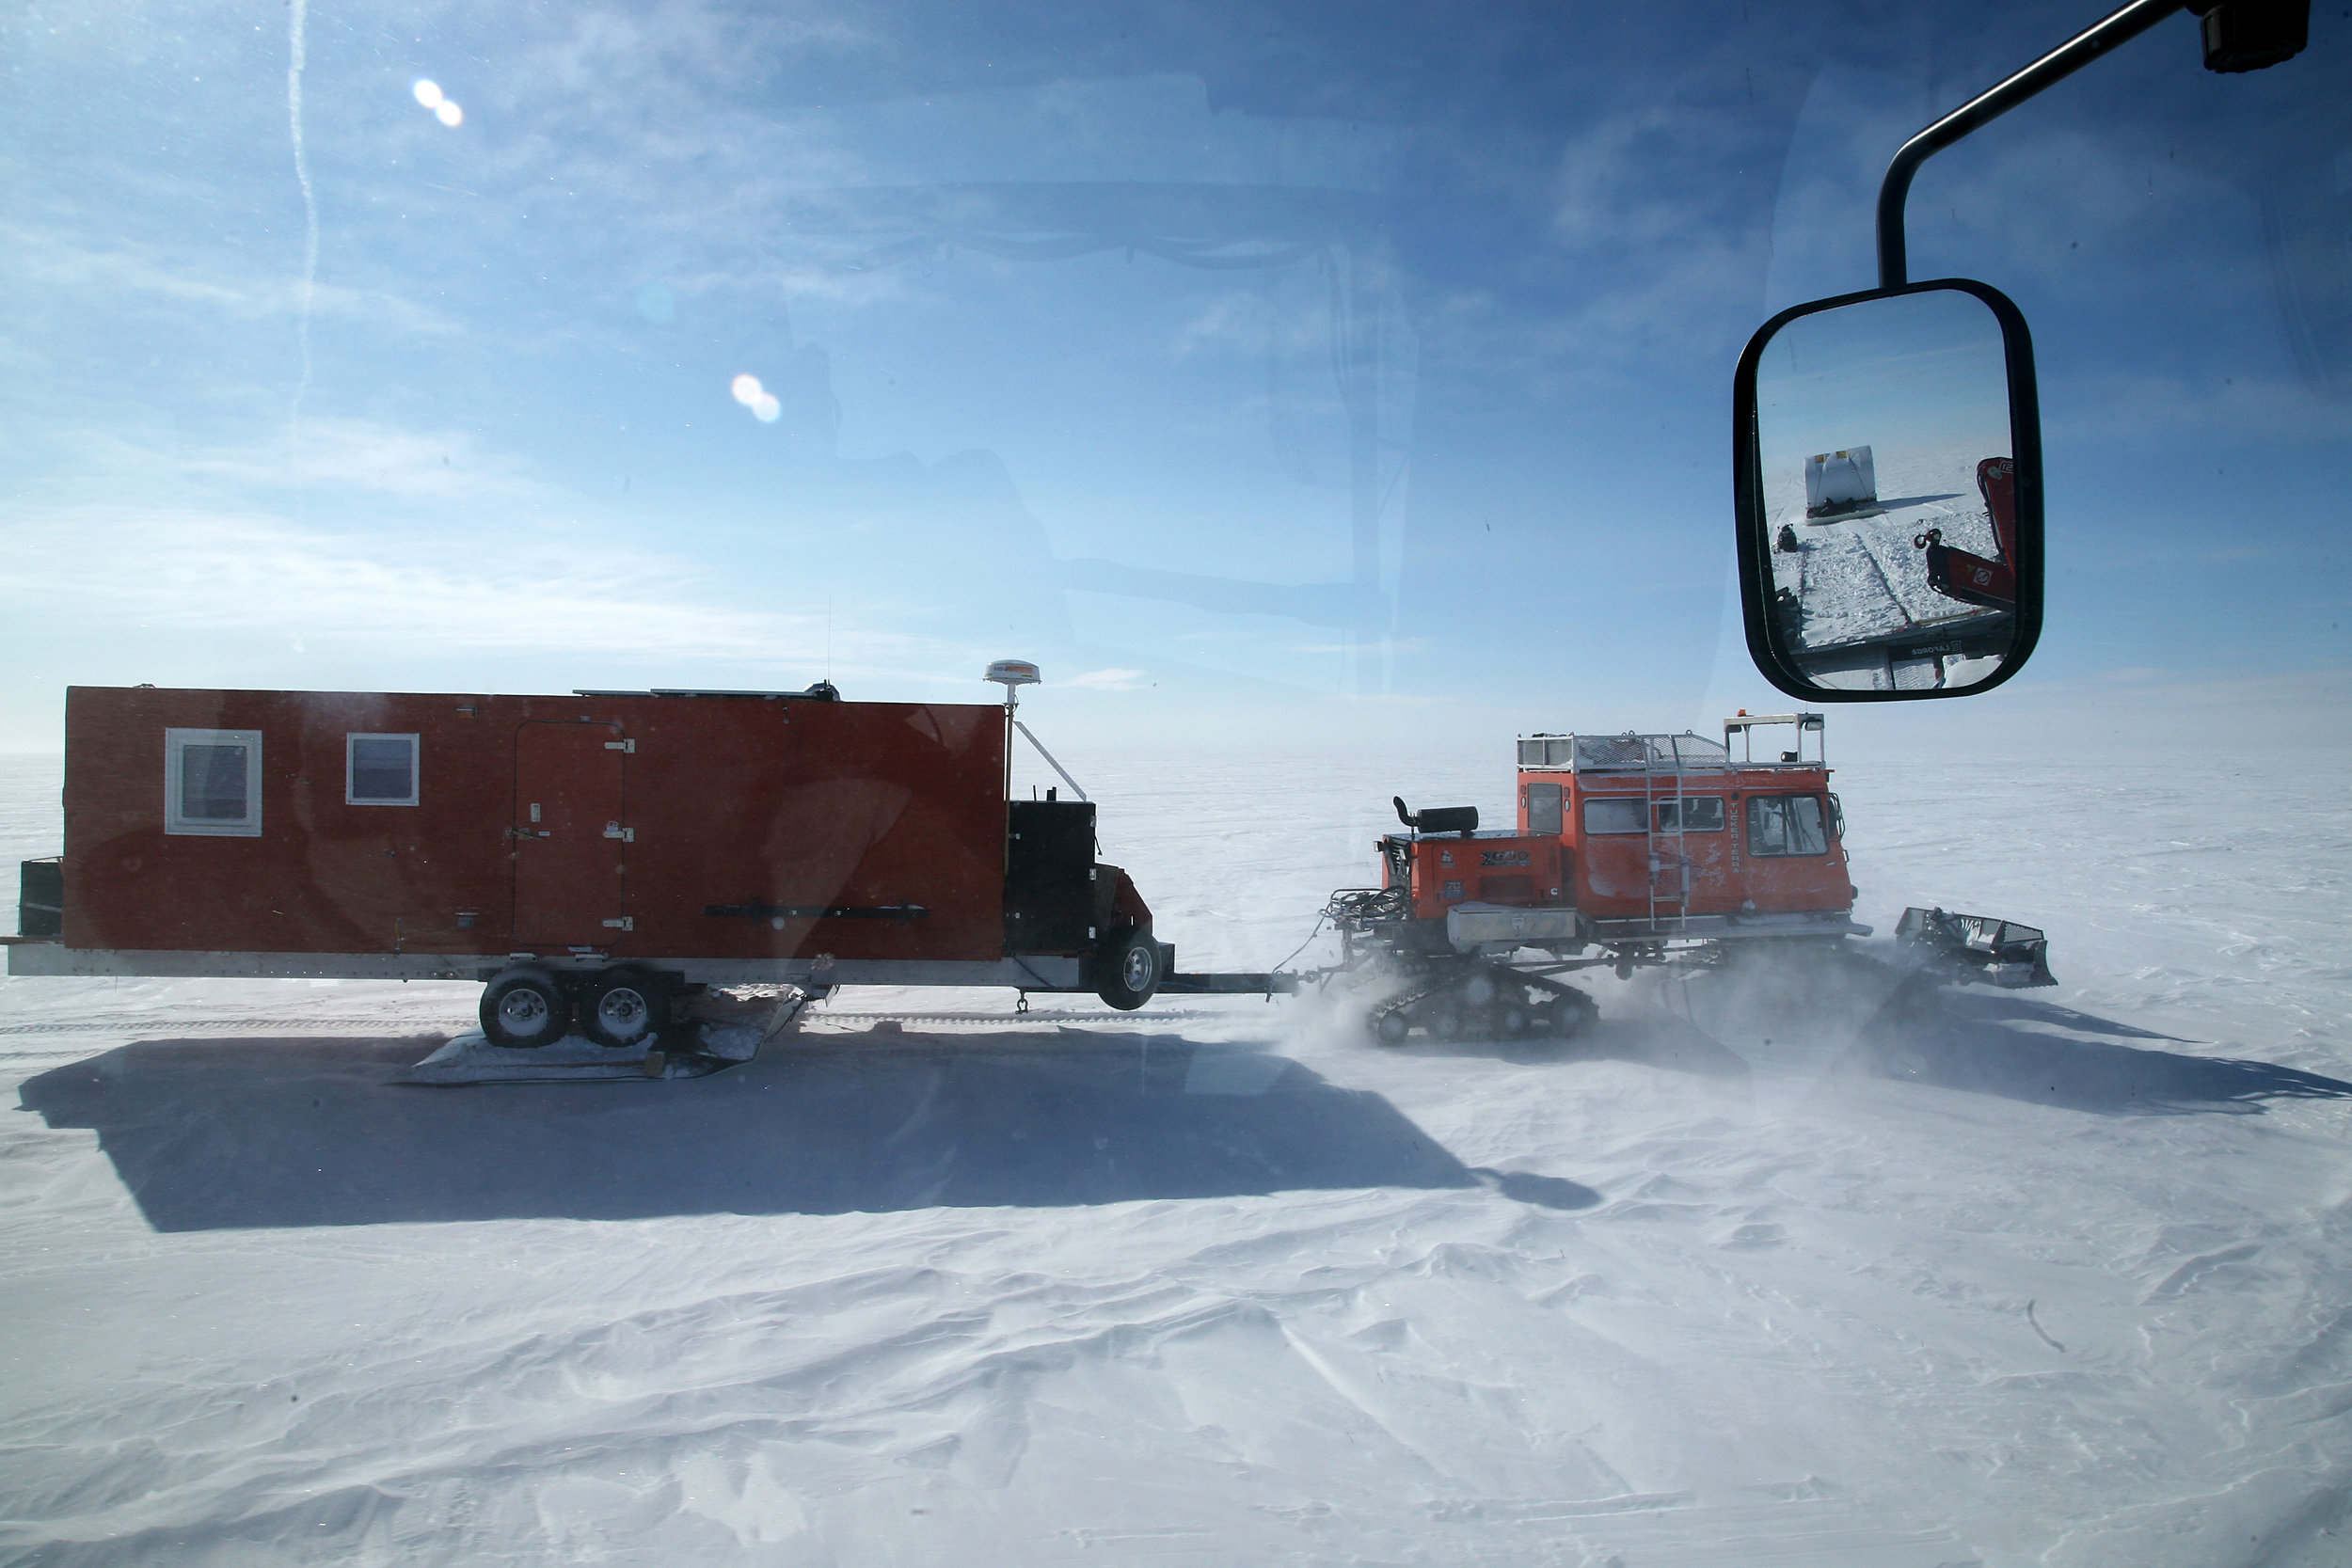 Hauling extensive amounts of fuel and equipment across the Greenland Ice Sheet is hard, but not impossible, as evidenced by the success of the 2012 Greenland Inland Traverse. Image: Ed Stockard